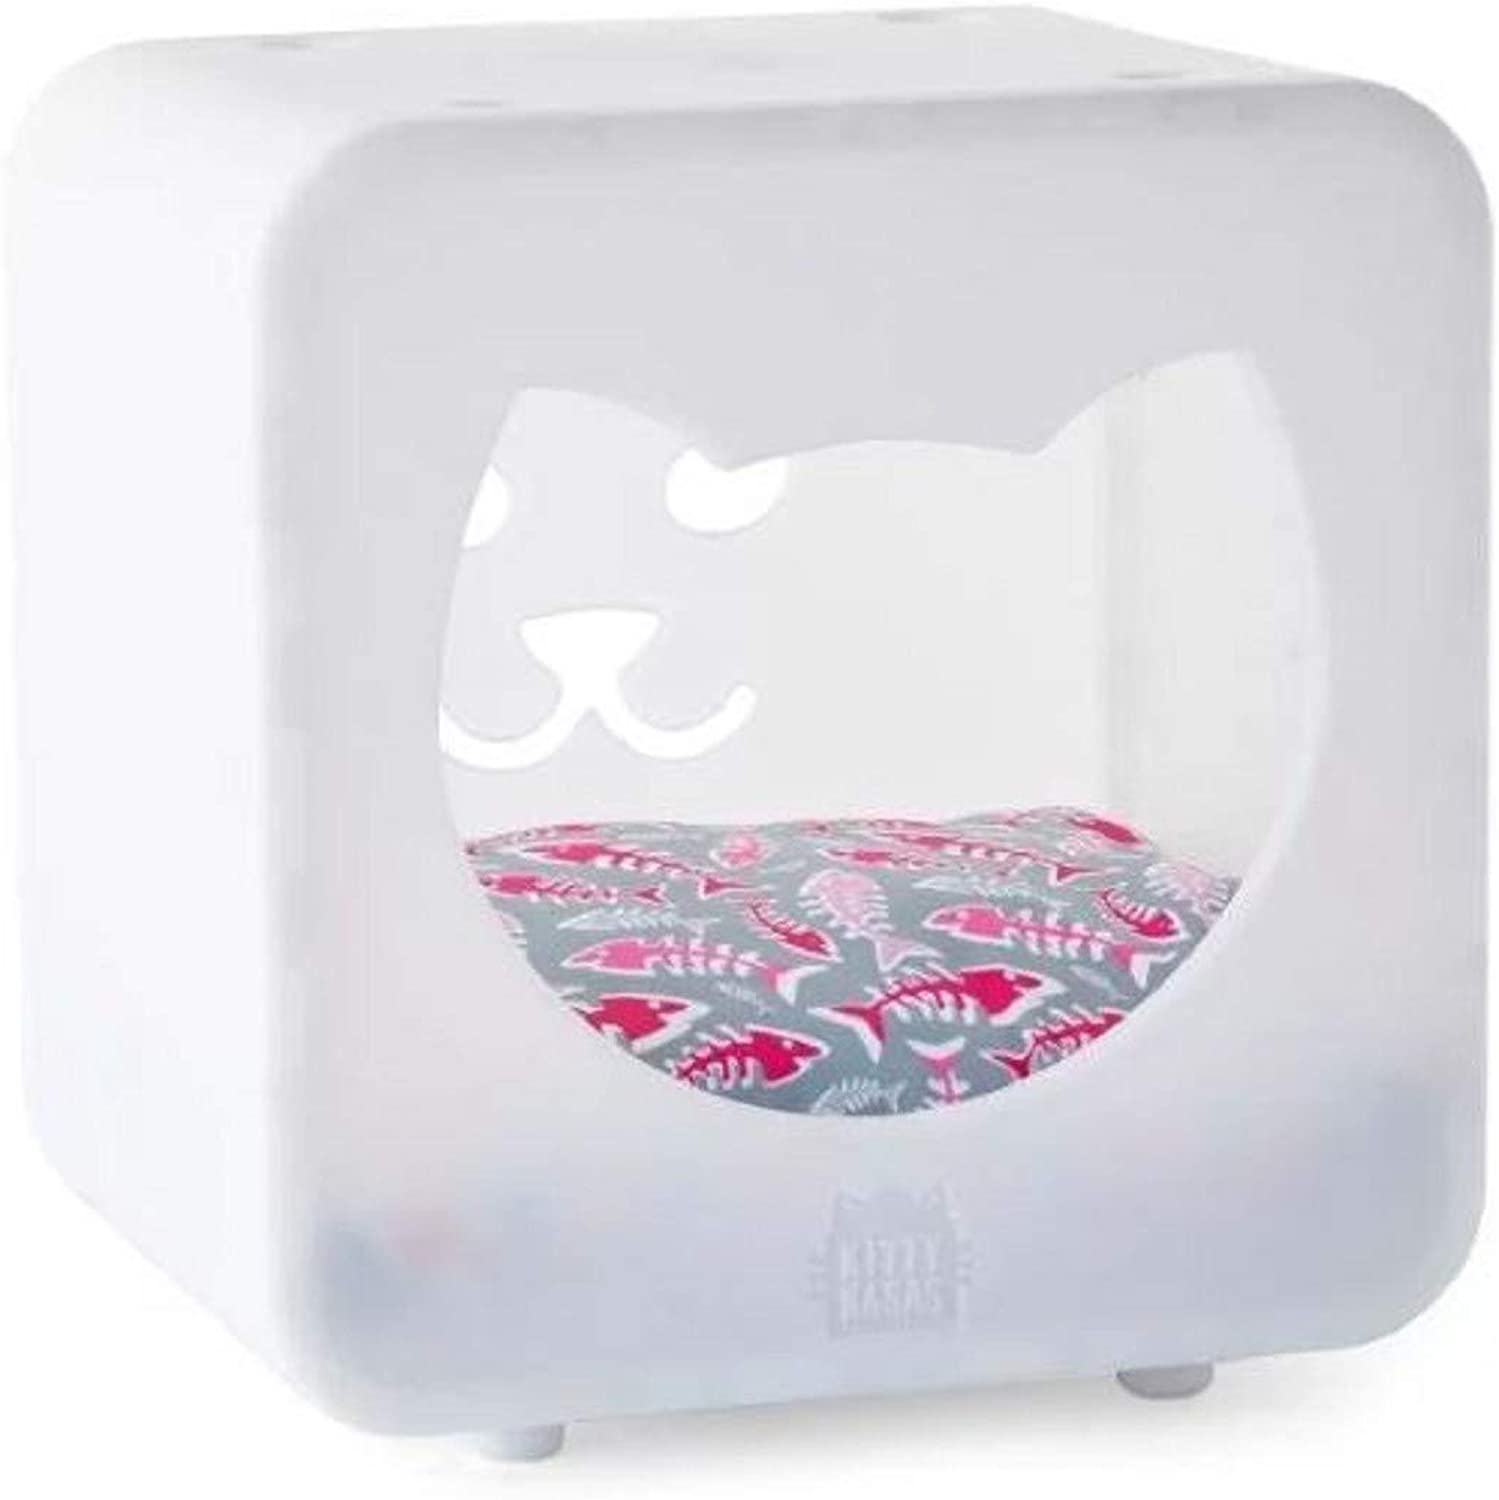 Hooded Pet Bed. Nicki Bedroom Cube Hooded Pet Bed Virtually Indestructible and Easy to Clean (White)